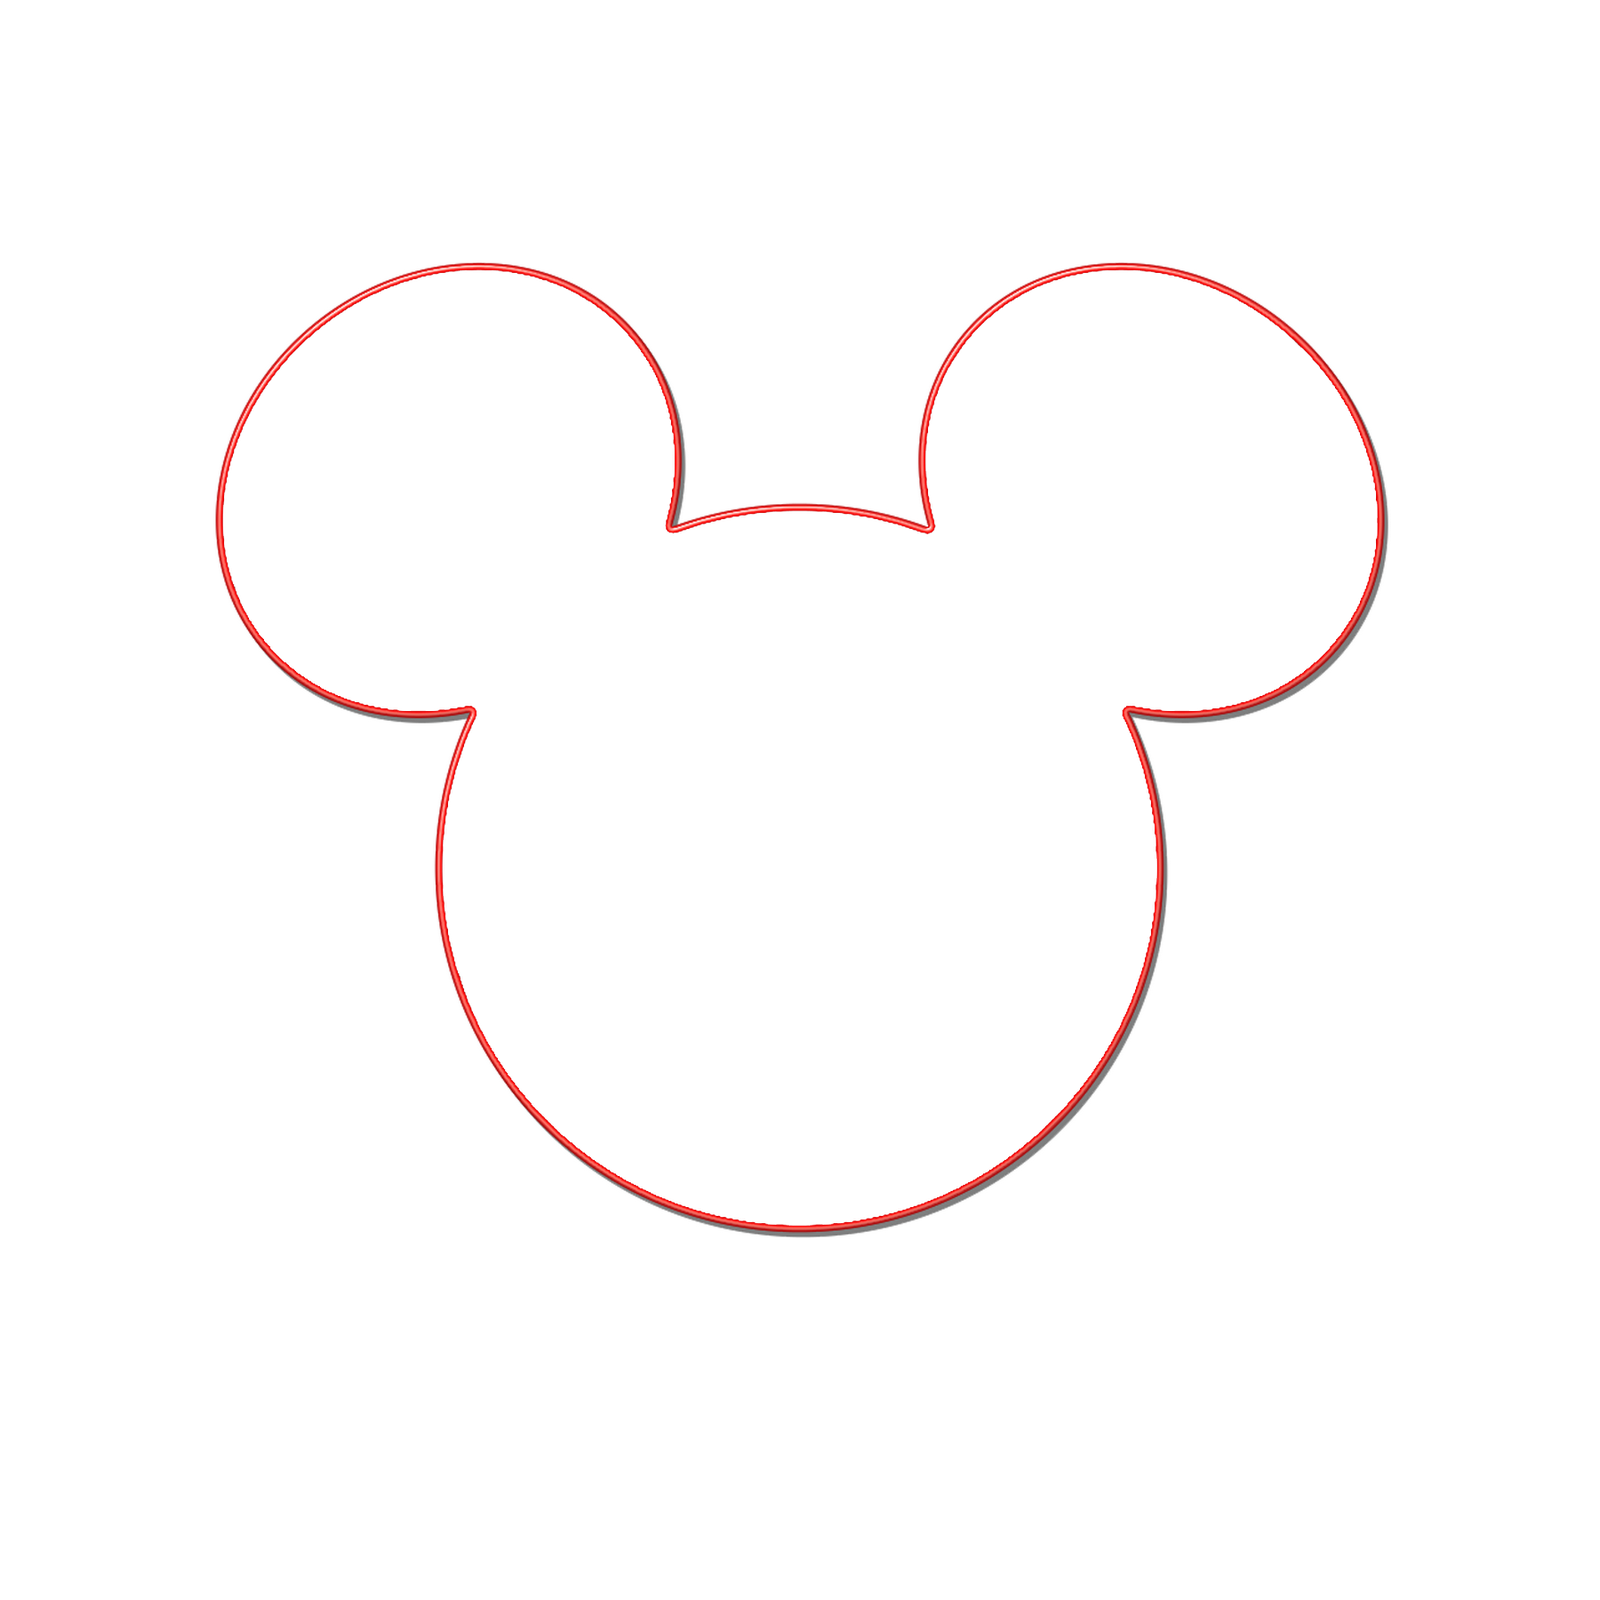 Mickey Mouse Silhouette Clip Art